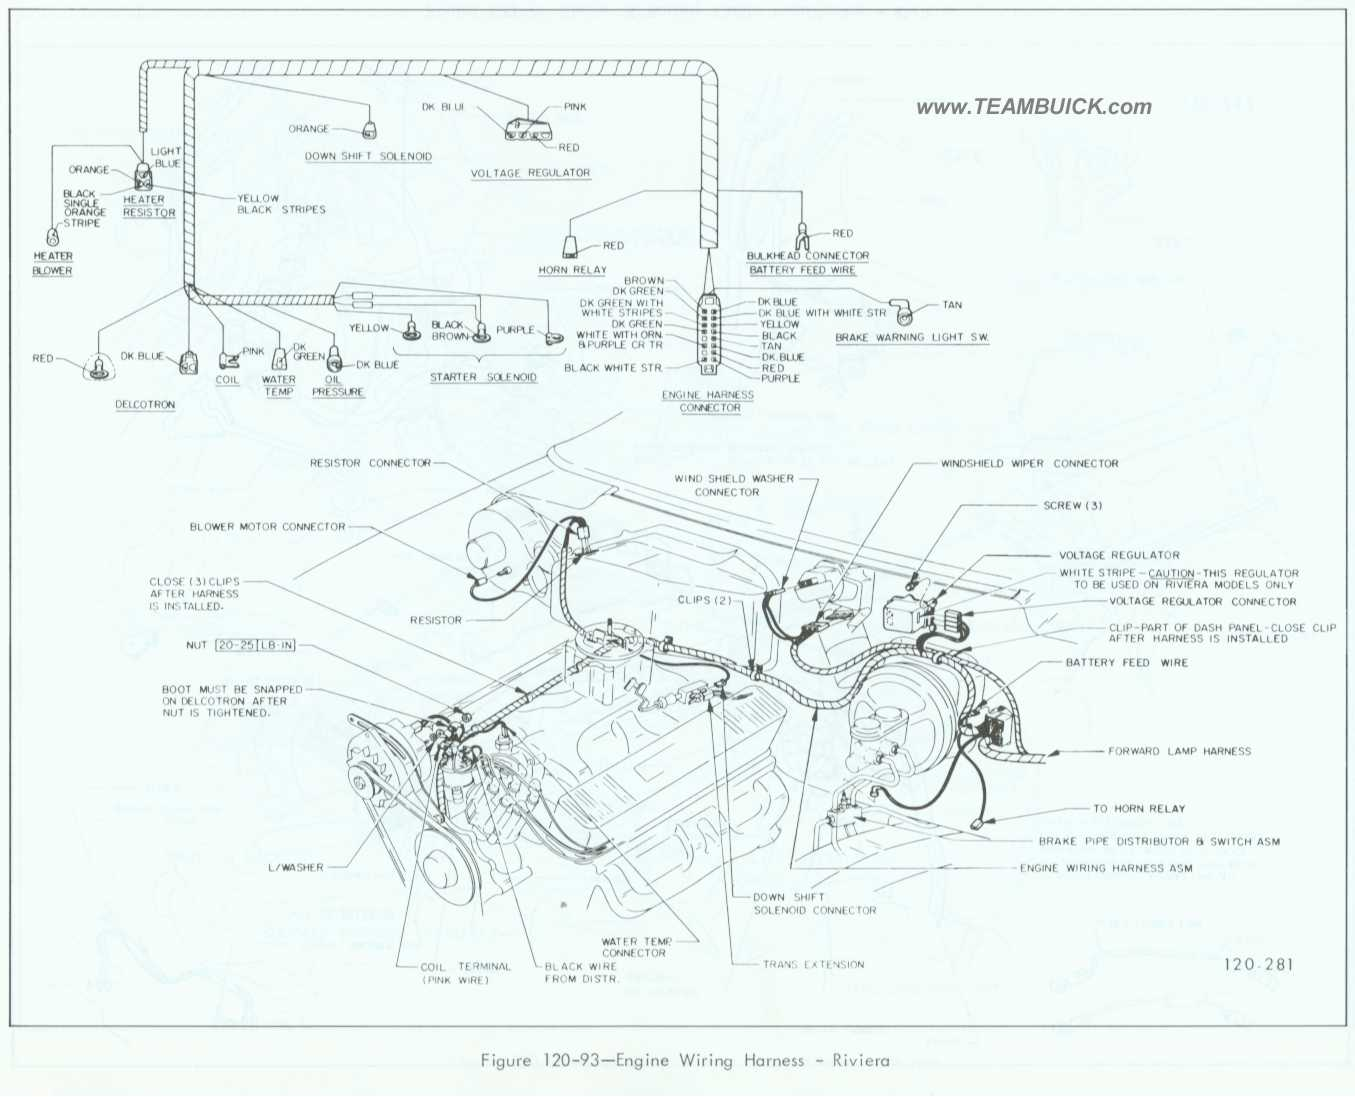 1967 buick riviera engine wiring harness. Black Bedroom Furniture Sets. Home Design Ideas